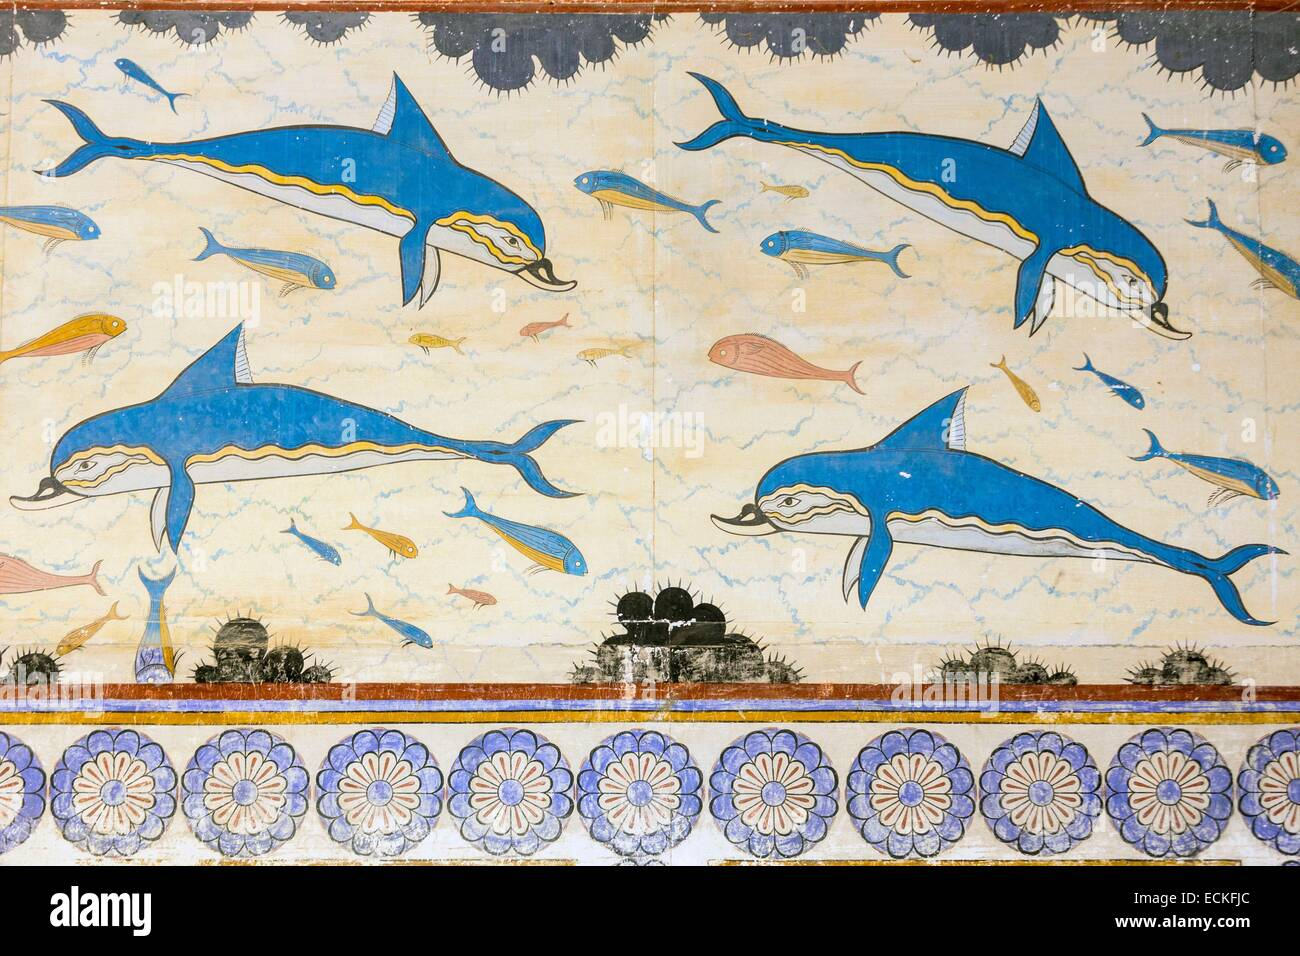 Greece crete archaeological site of knossos for Dolphin mural knossos